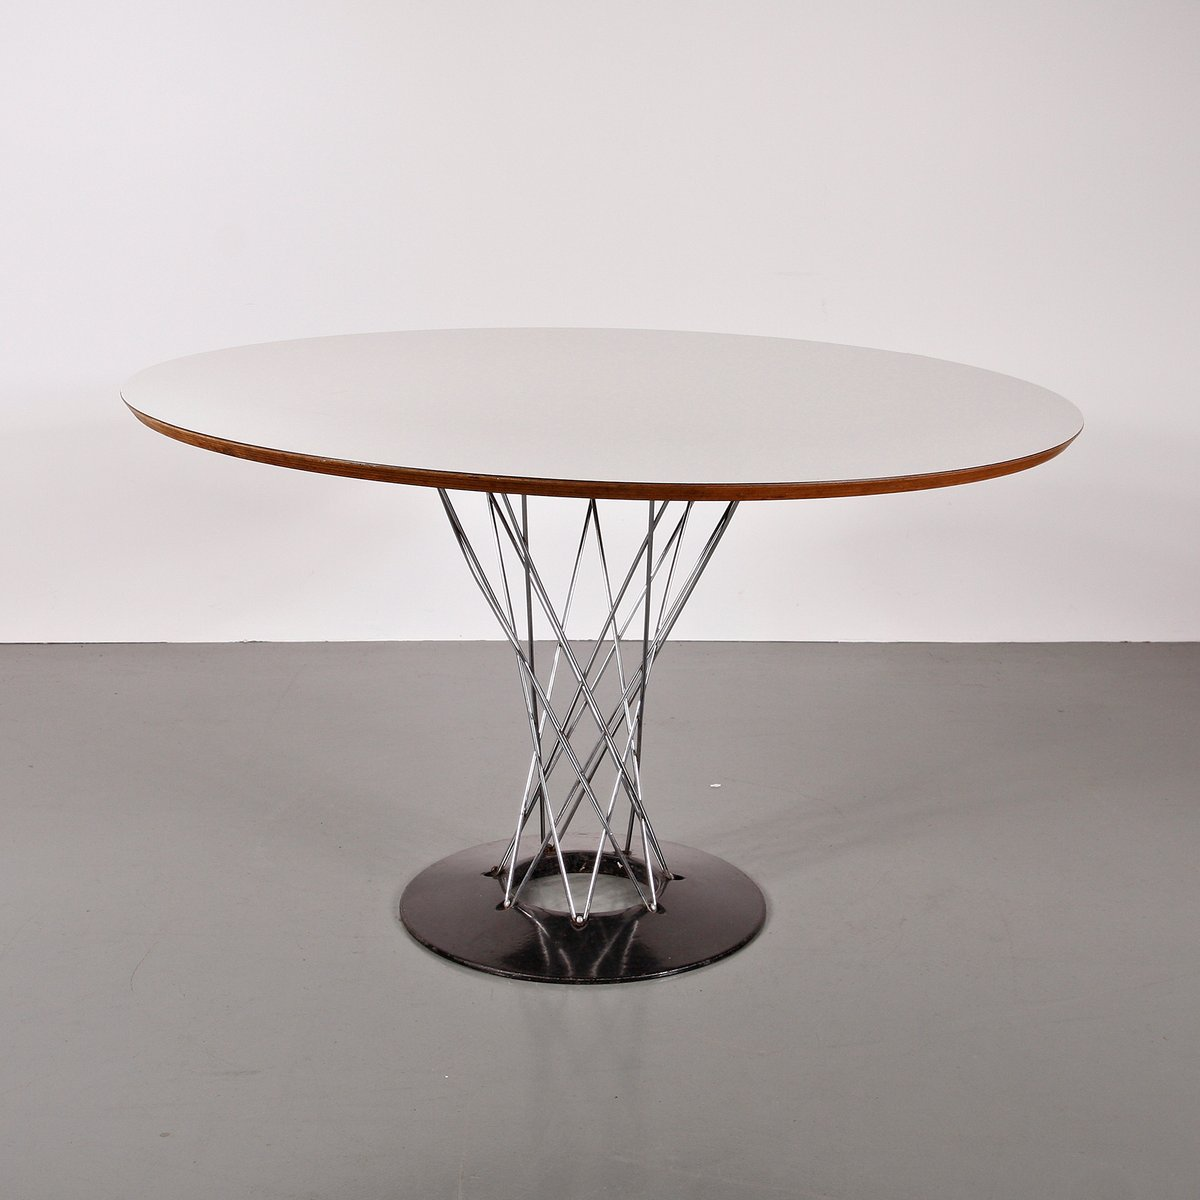 cyclone table by isamu noguchi for knoll s for sale at pamono - cyclone table by isamu noguchi for knoll s